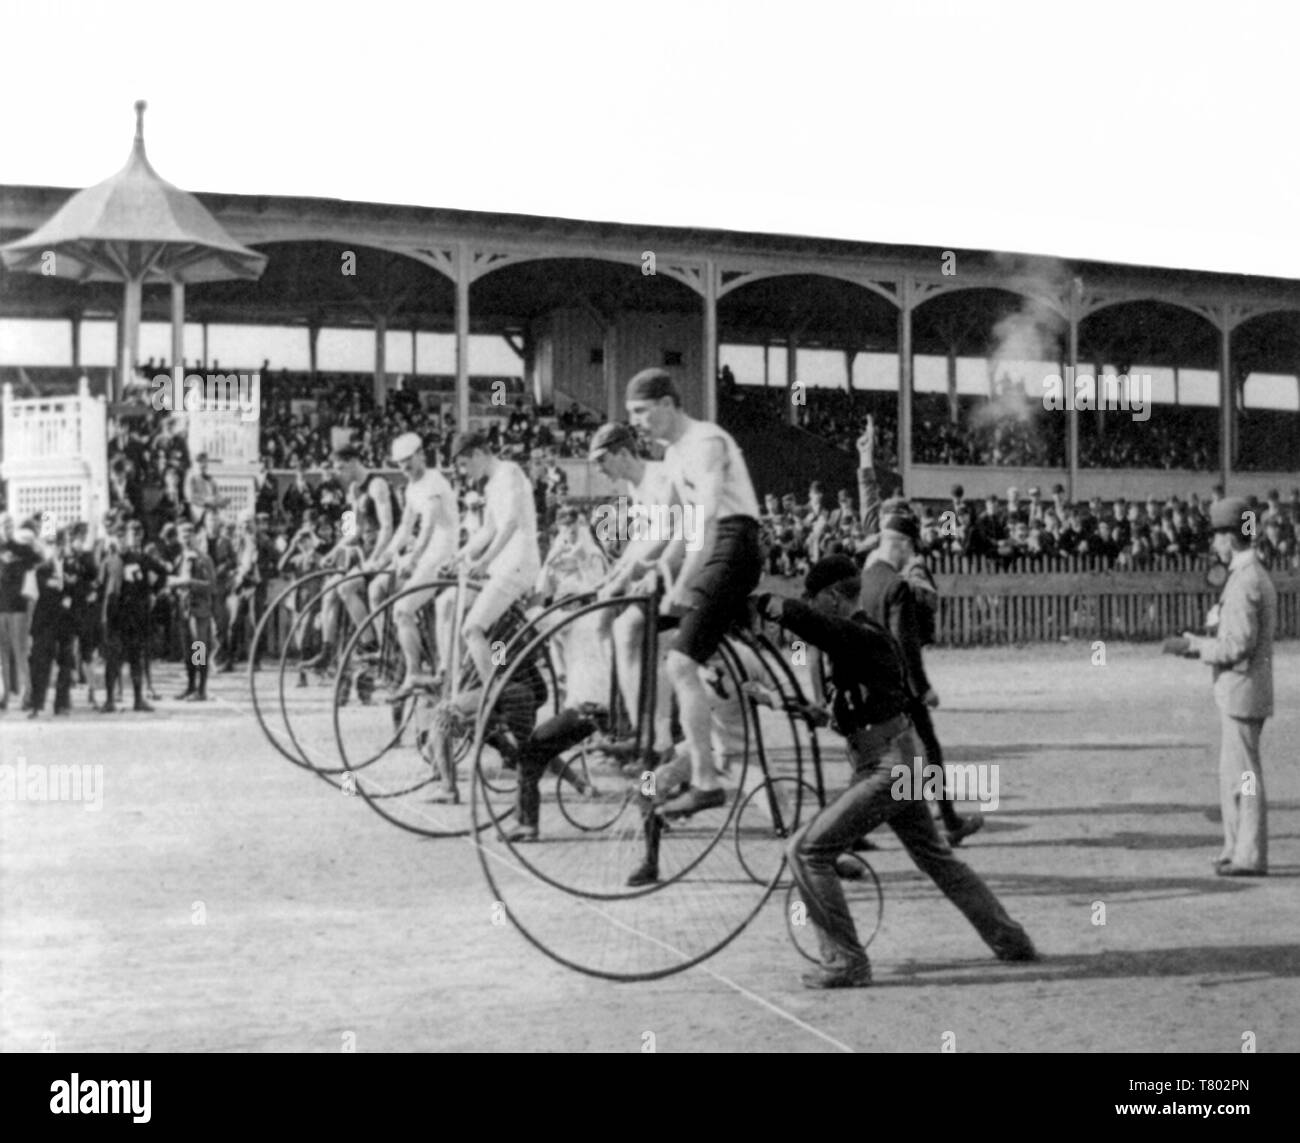 1800s Bicycle Stock Photos & 1800s Bicycle Stock Images - Alamy